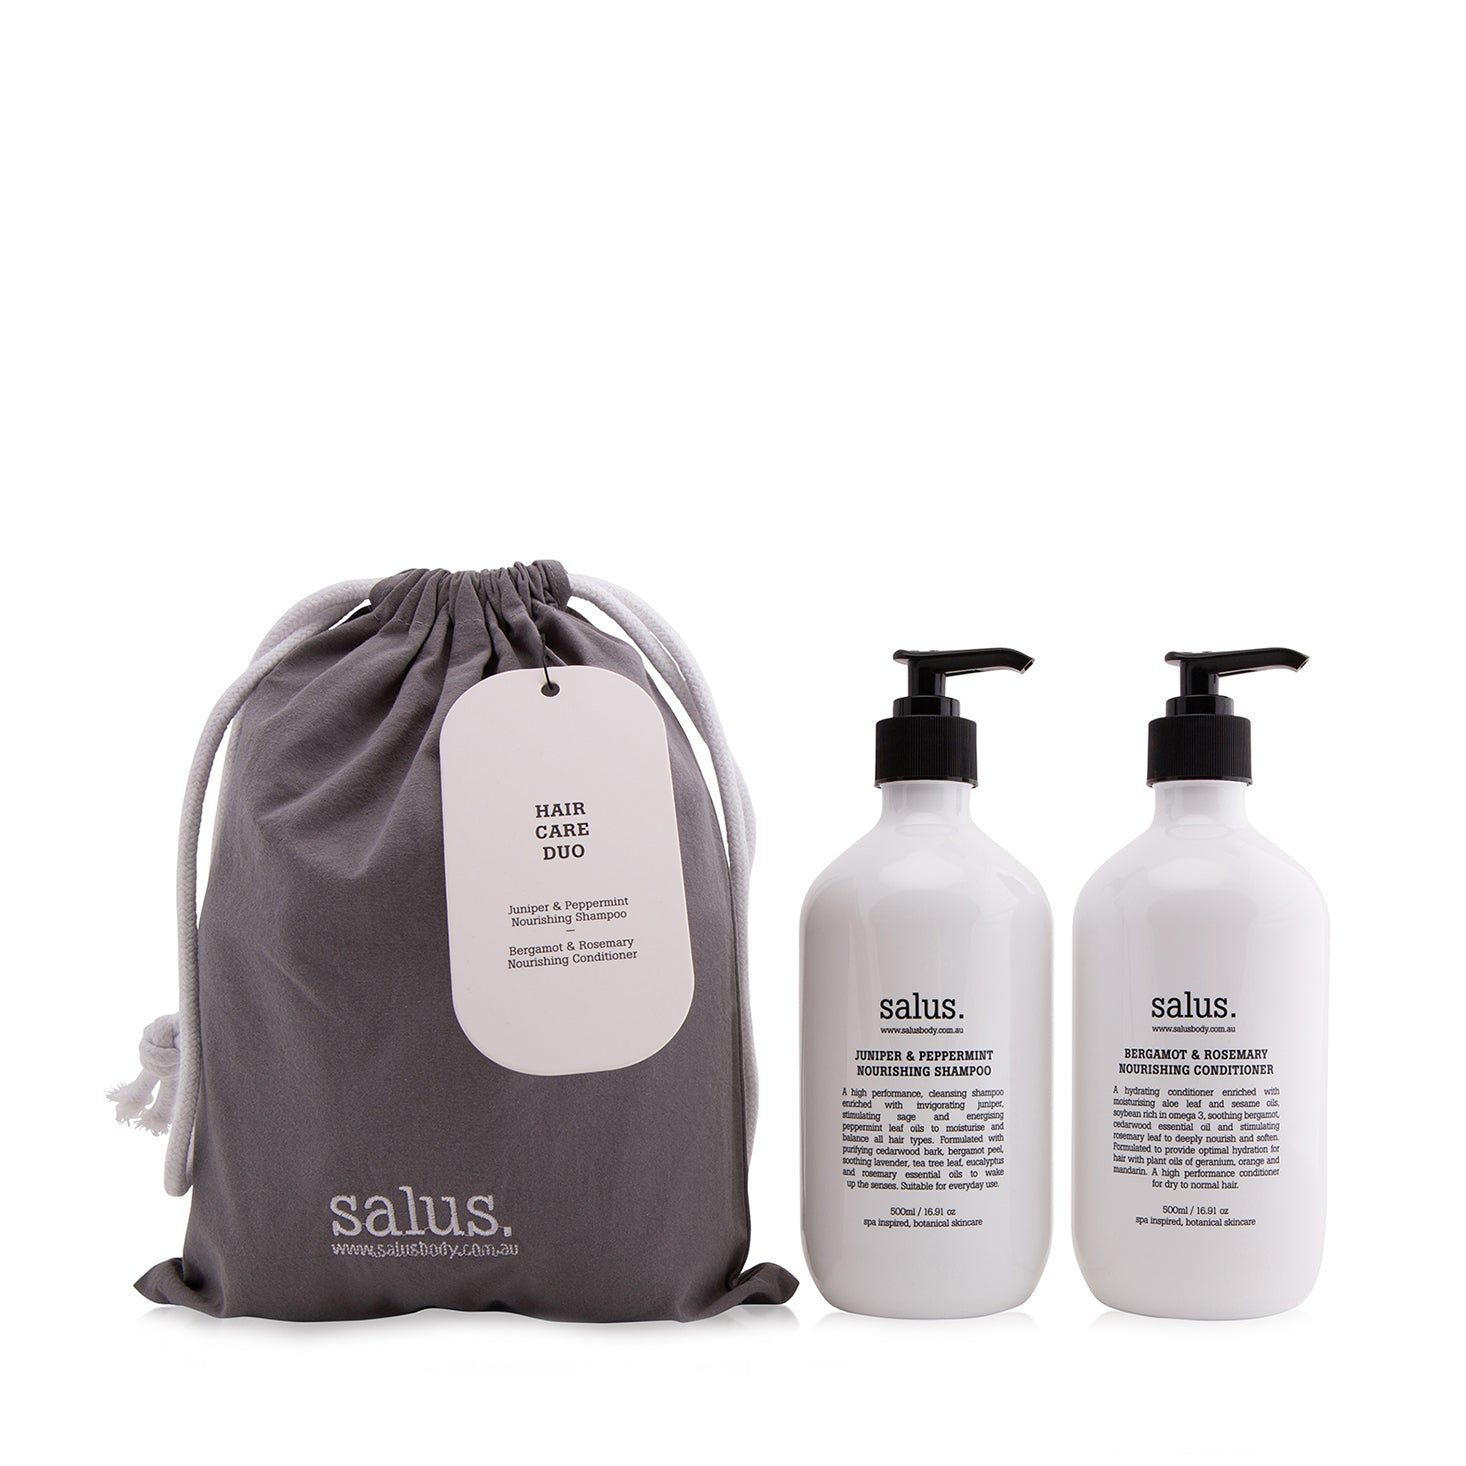 Salus Hair Care Duo - Value $70.00